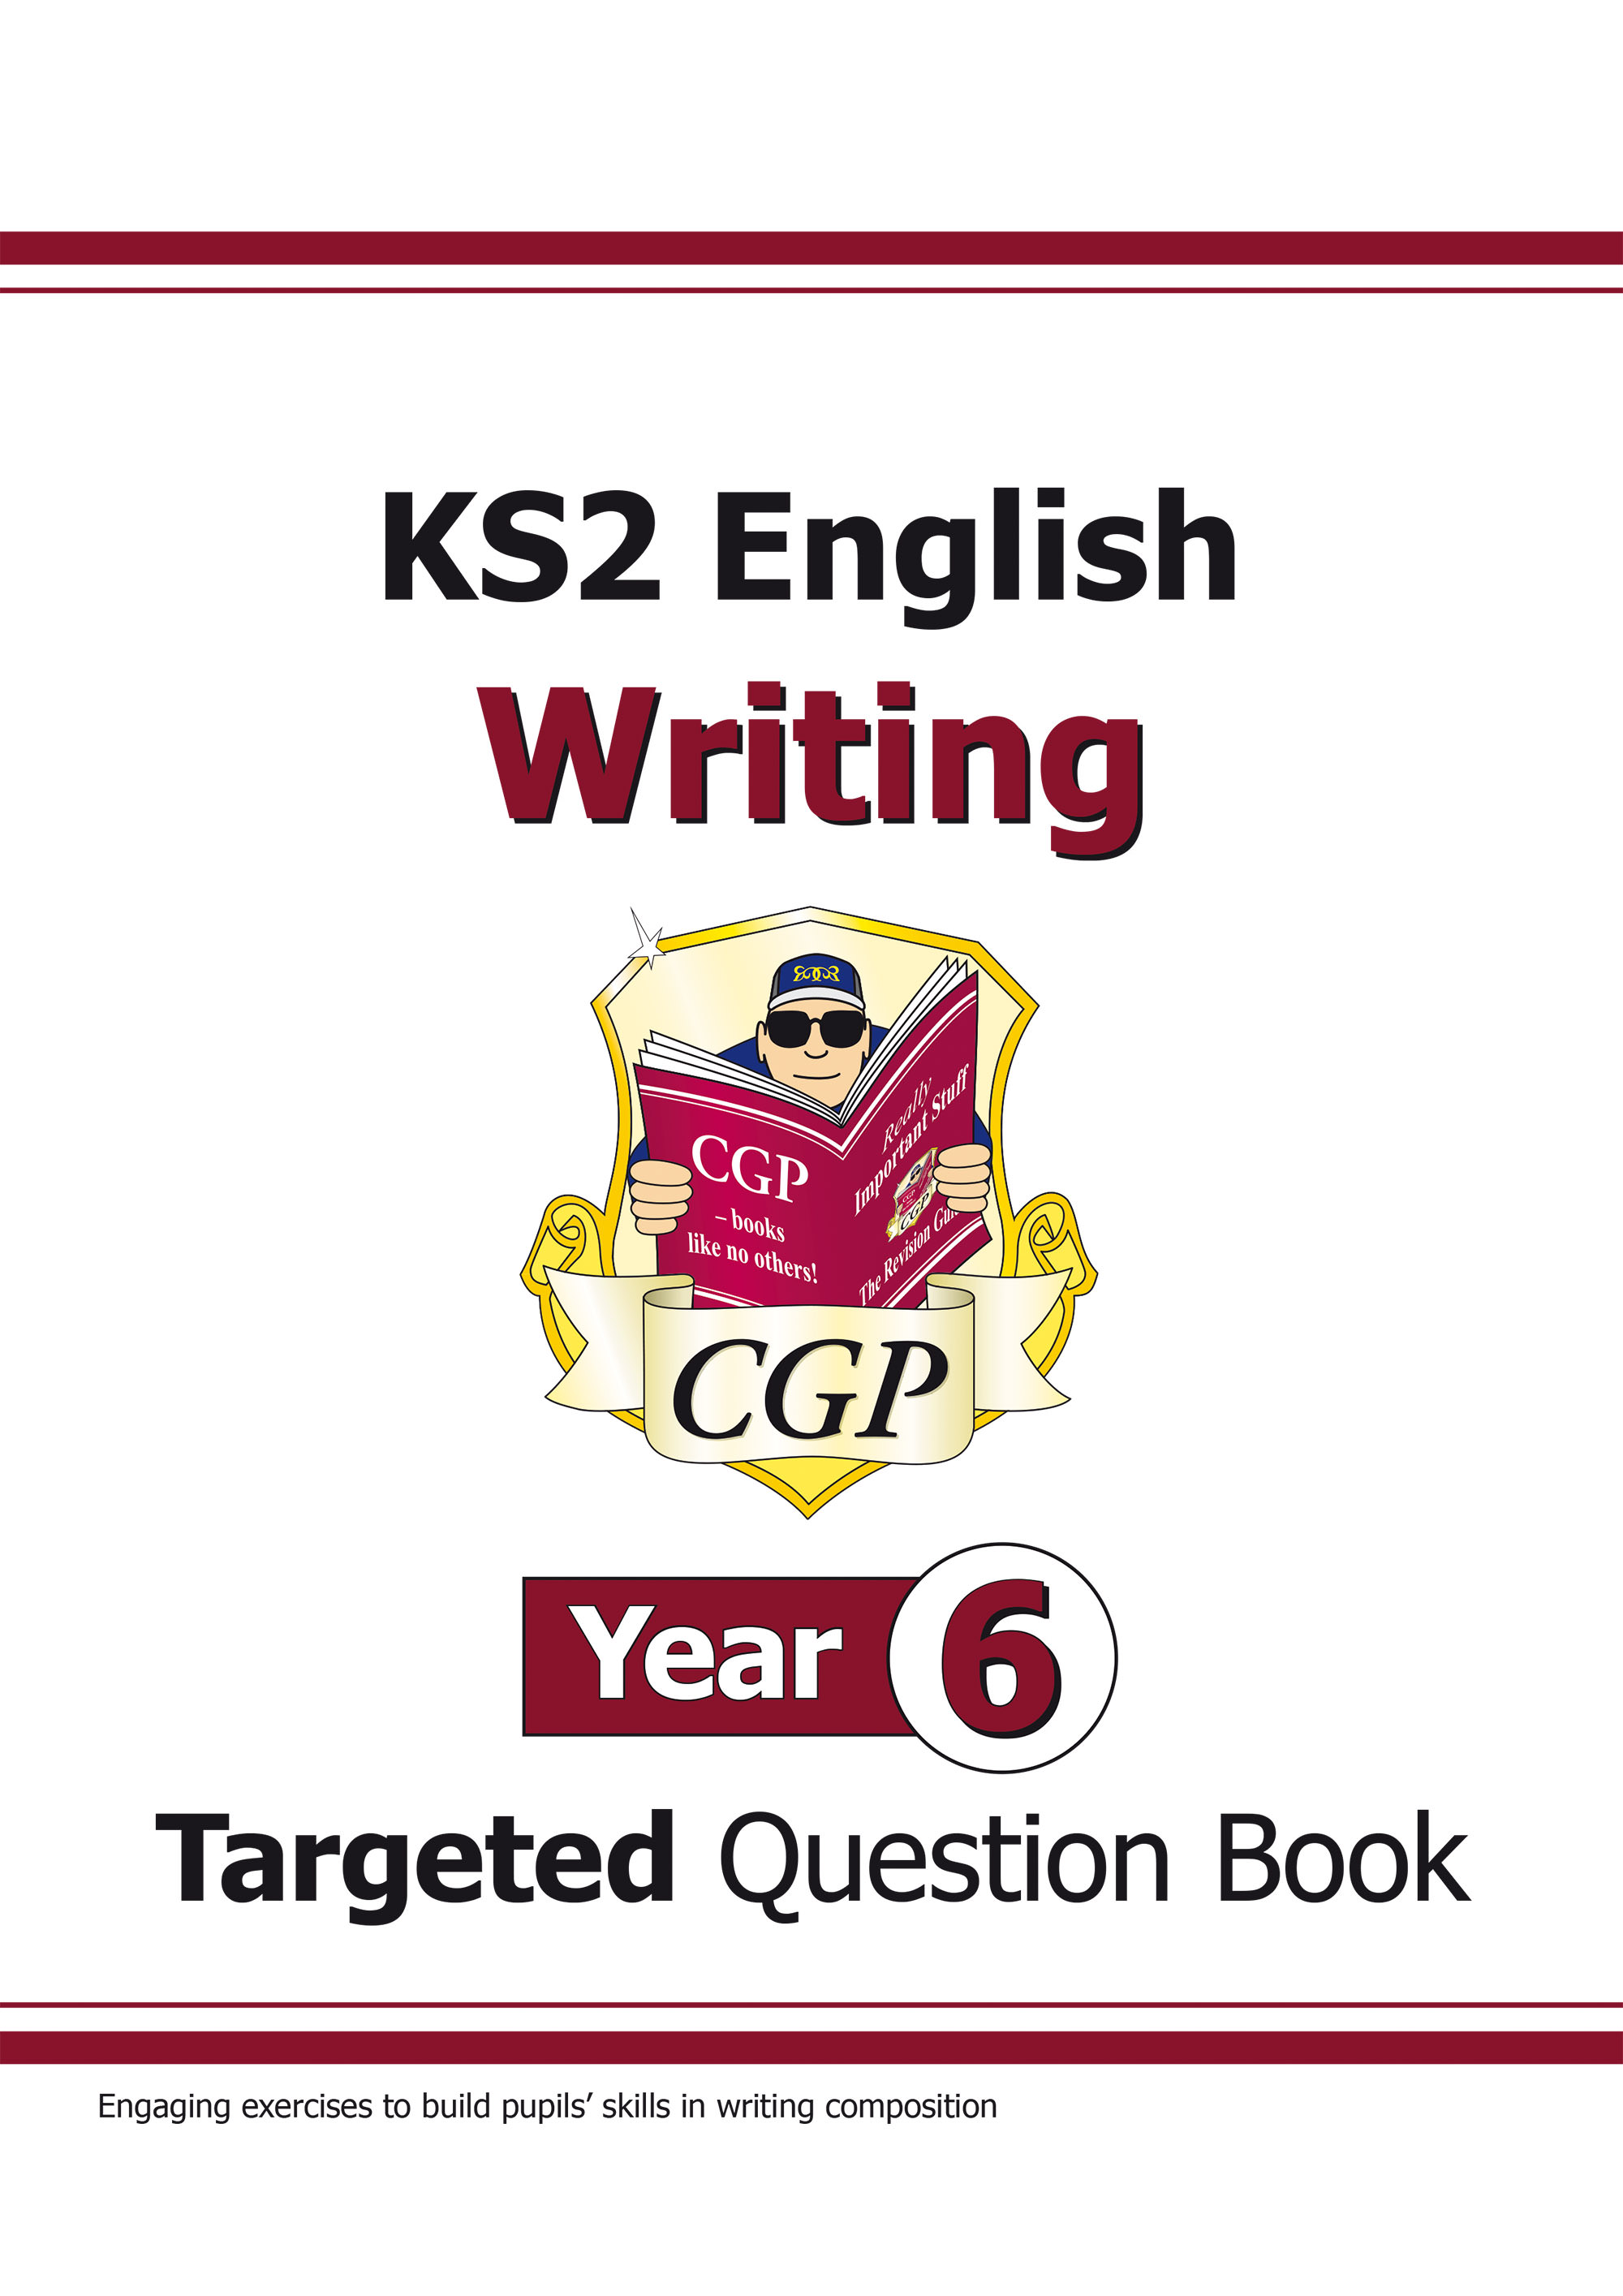 E6WW21D - KS2 English Writing Targeted Question Book - Year 6 Online Edition